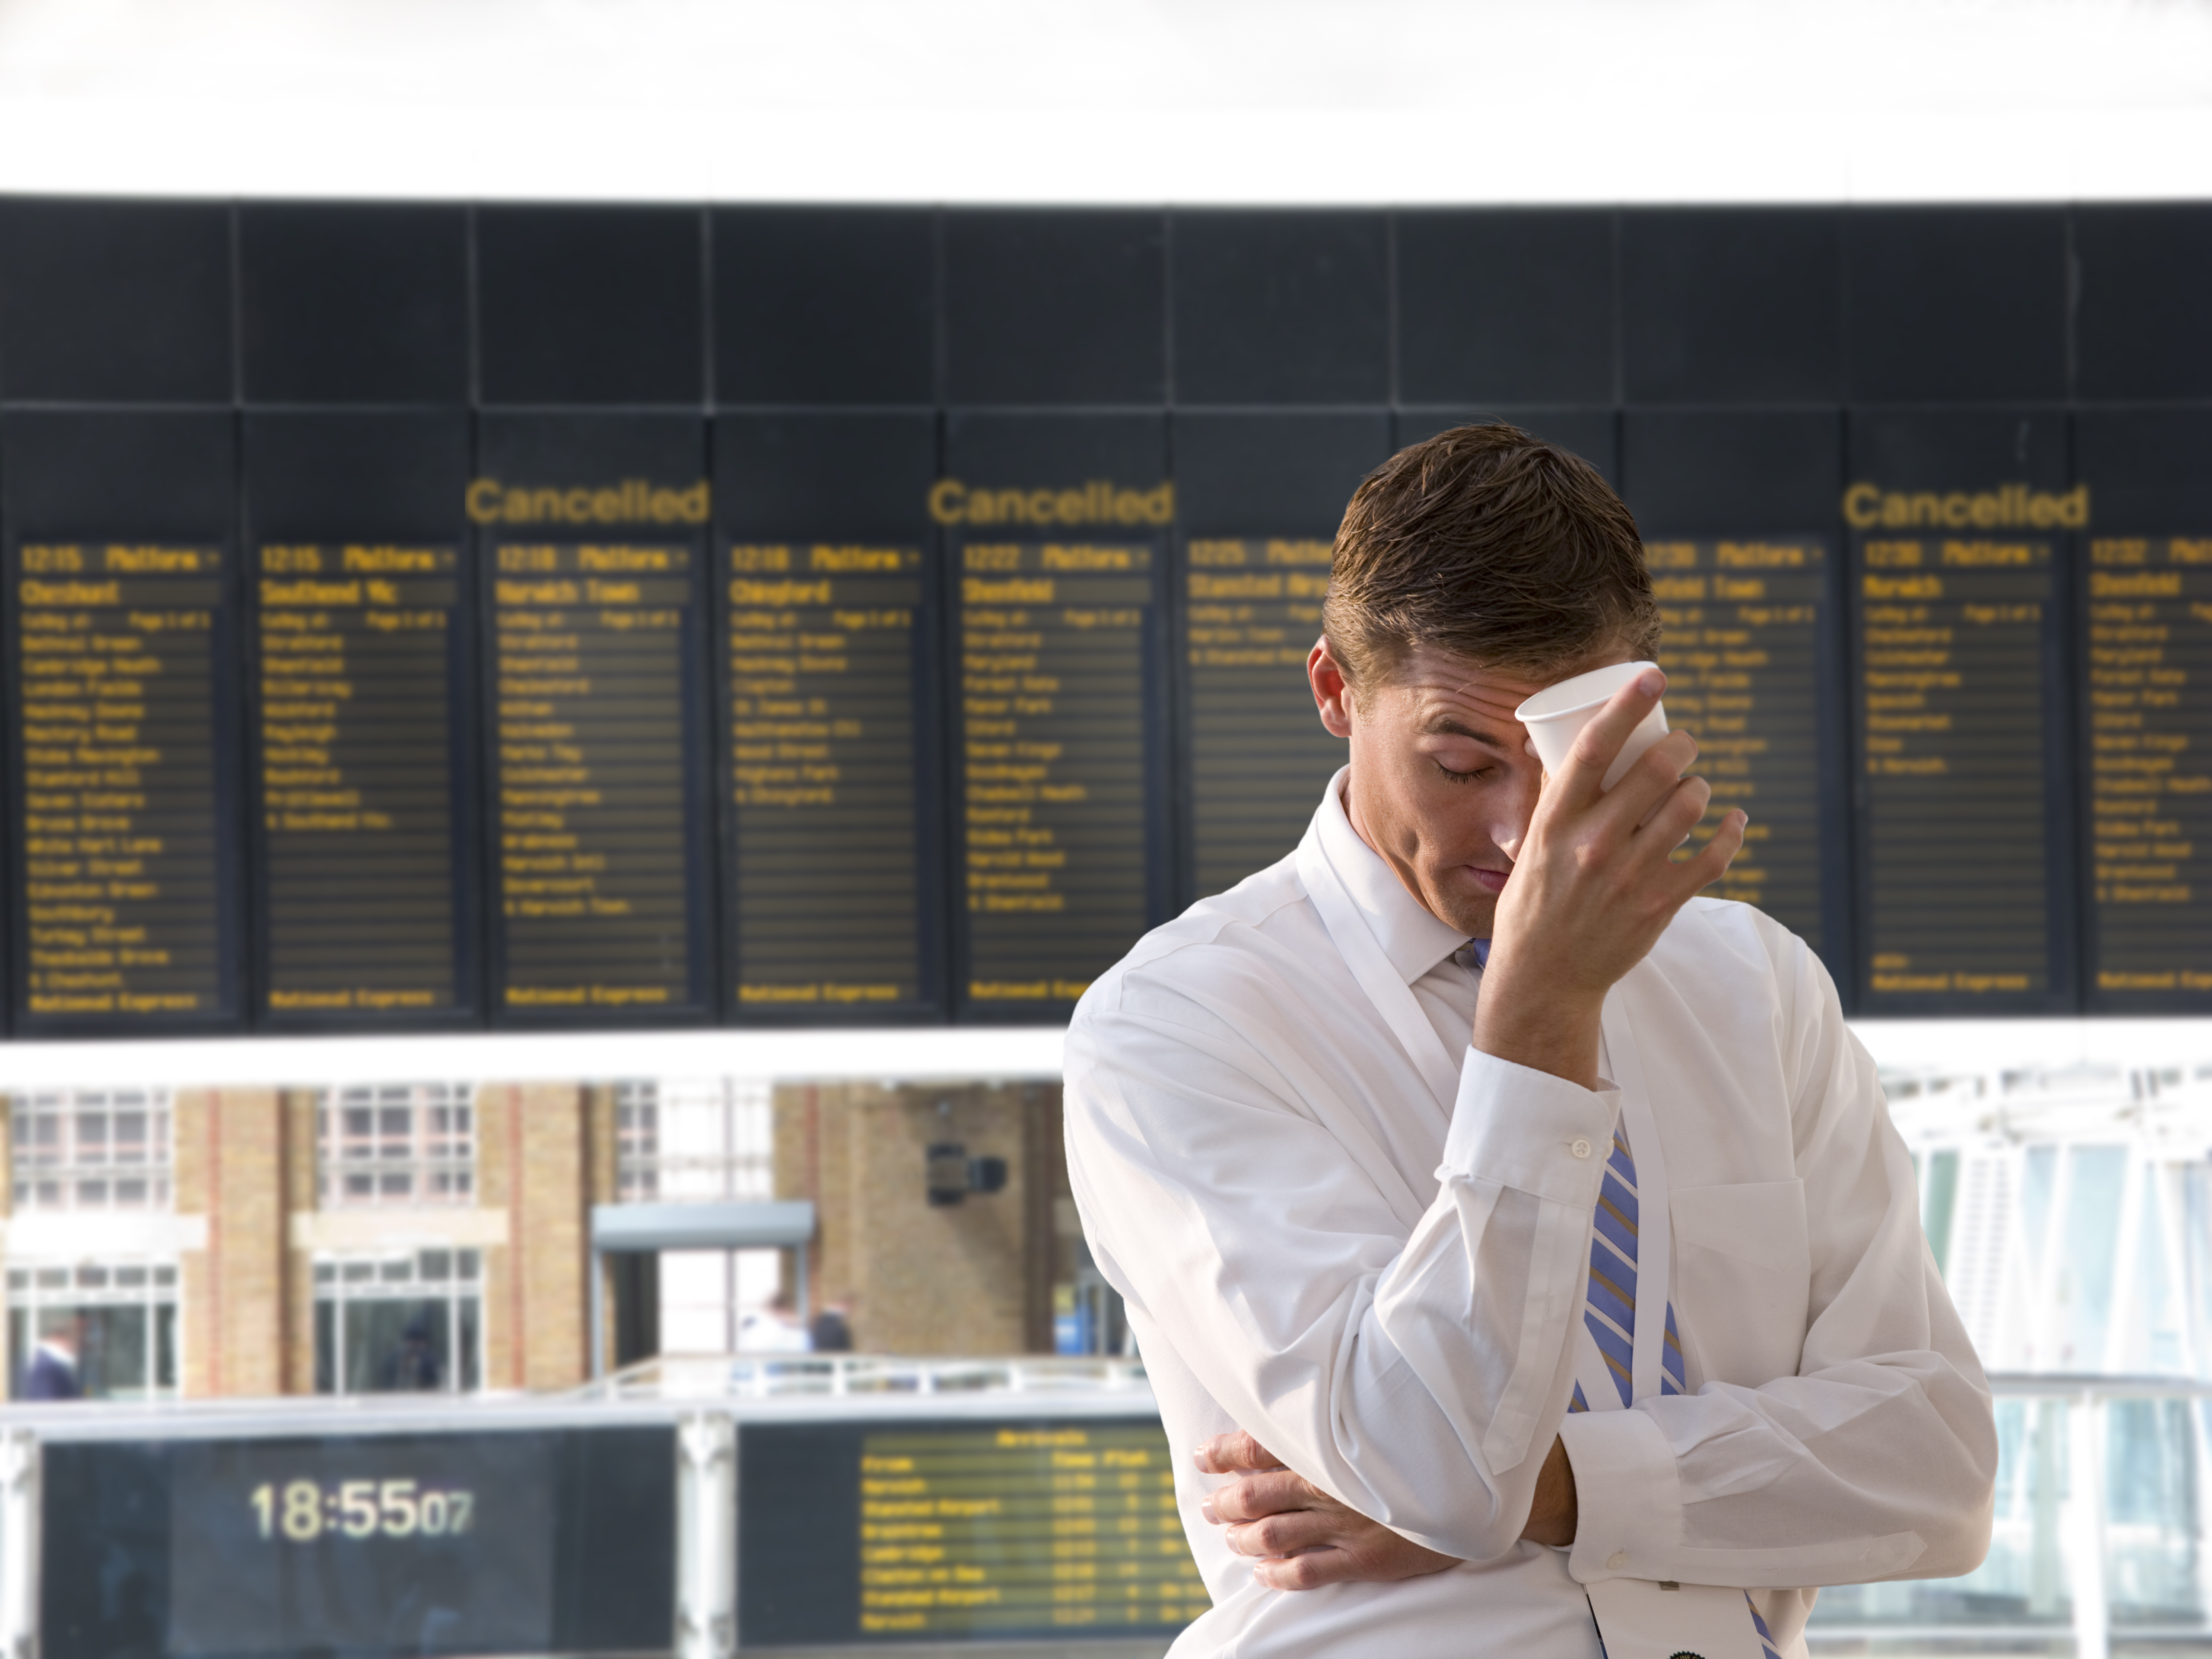 Flight delays and cancellations at Berlin airports | FairPlane UK image